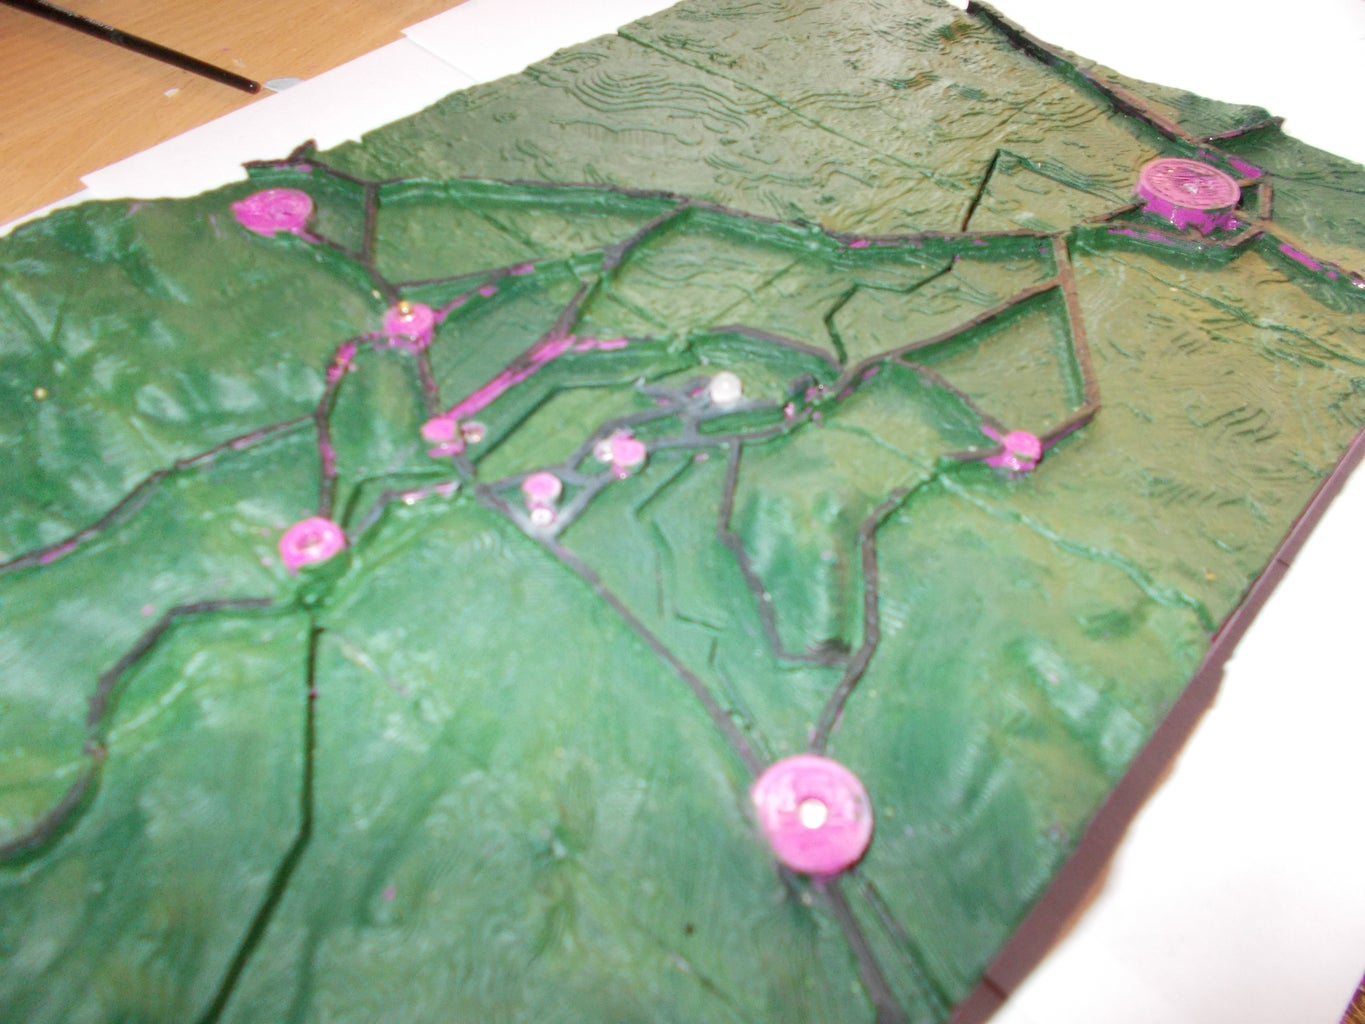 Making a 3D Printable 3D Map With Roads and Features